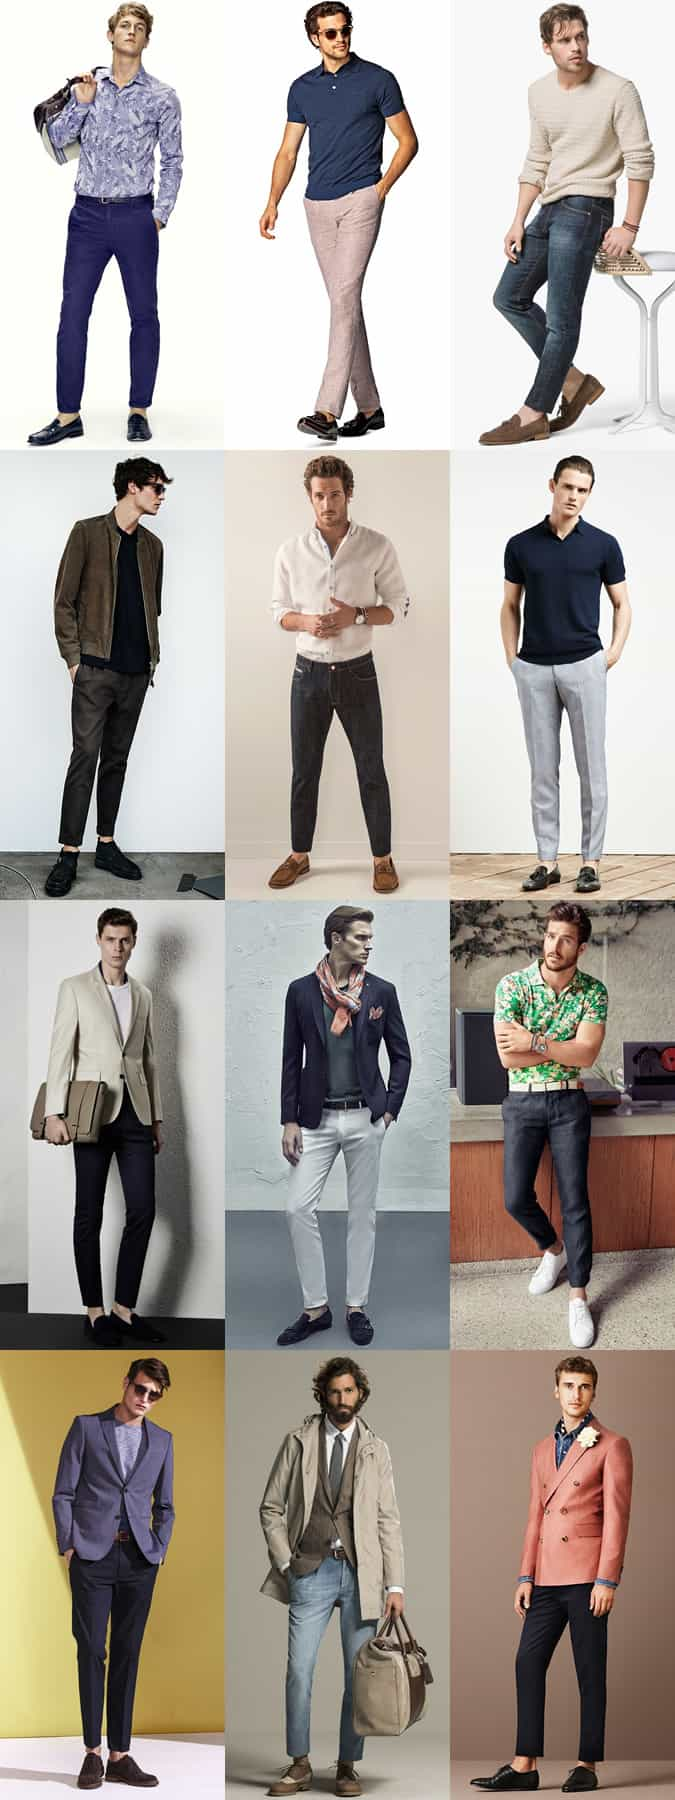 Men's Sockless Outfits - Slim and Tapered Jeans, Chinos and Trousers